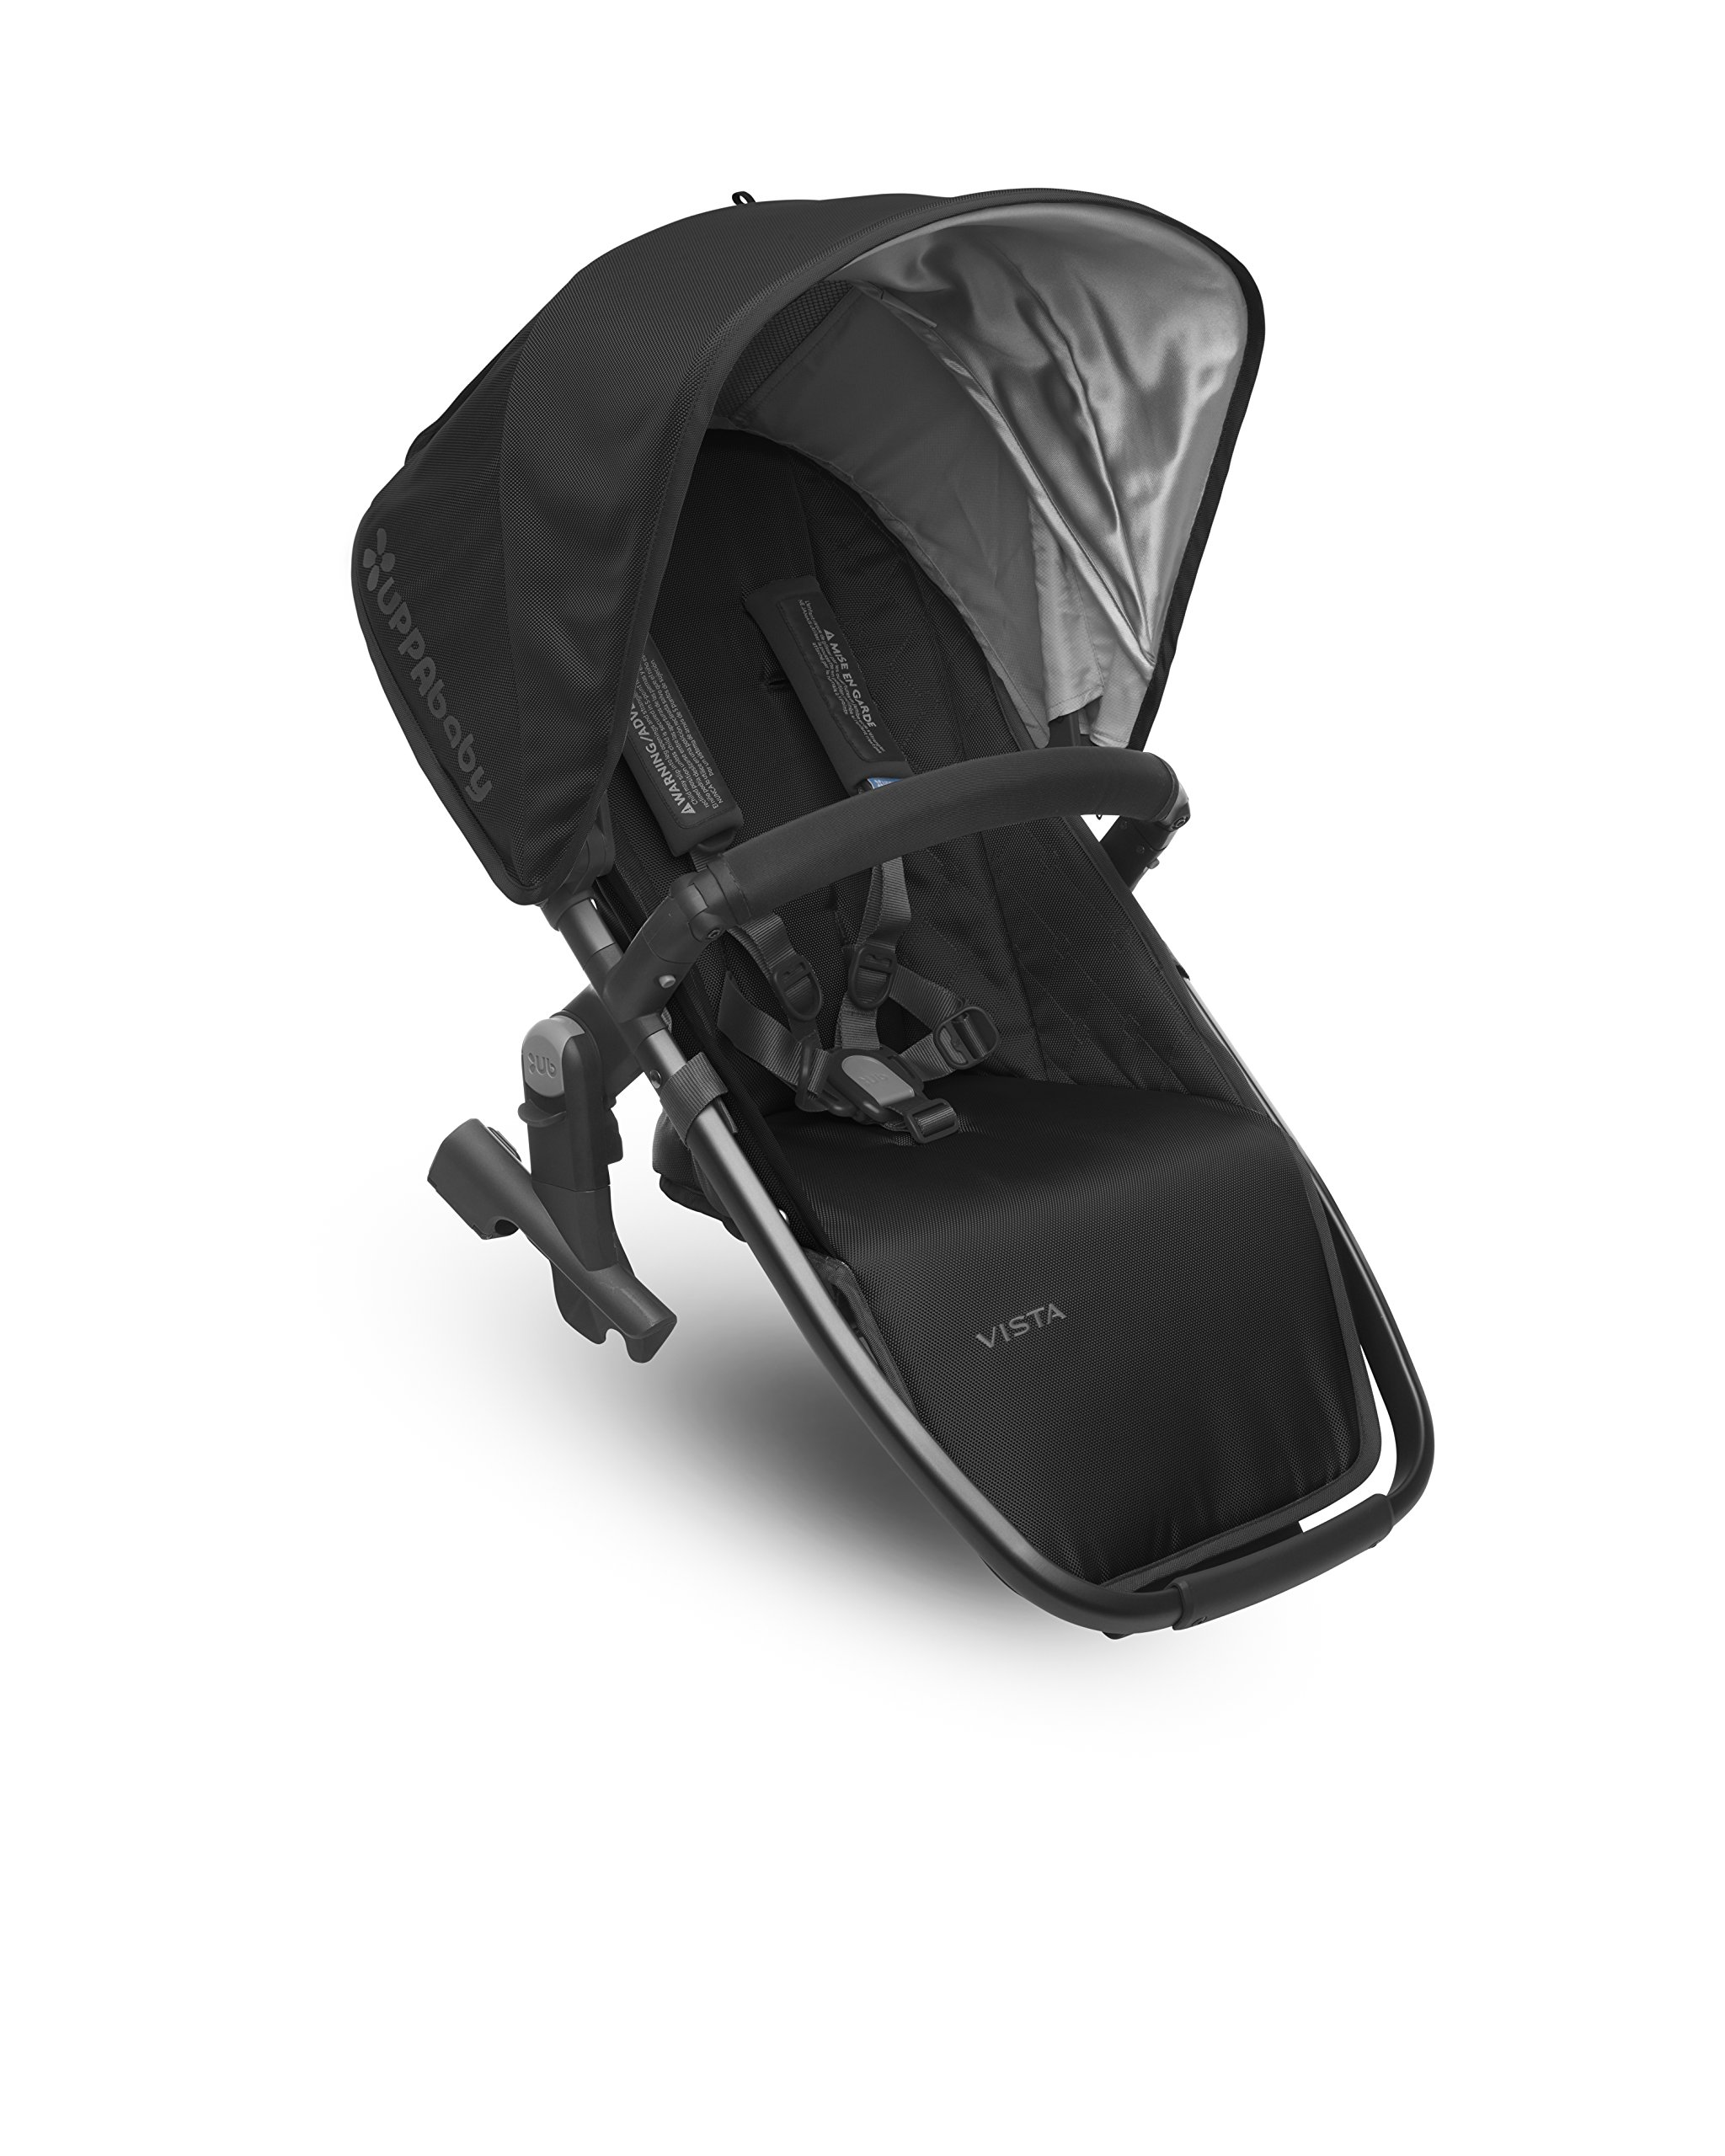 UPPAbaby 2017 Vista Rumble Seat in Jake